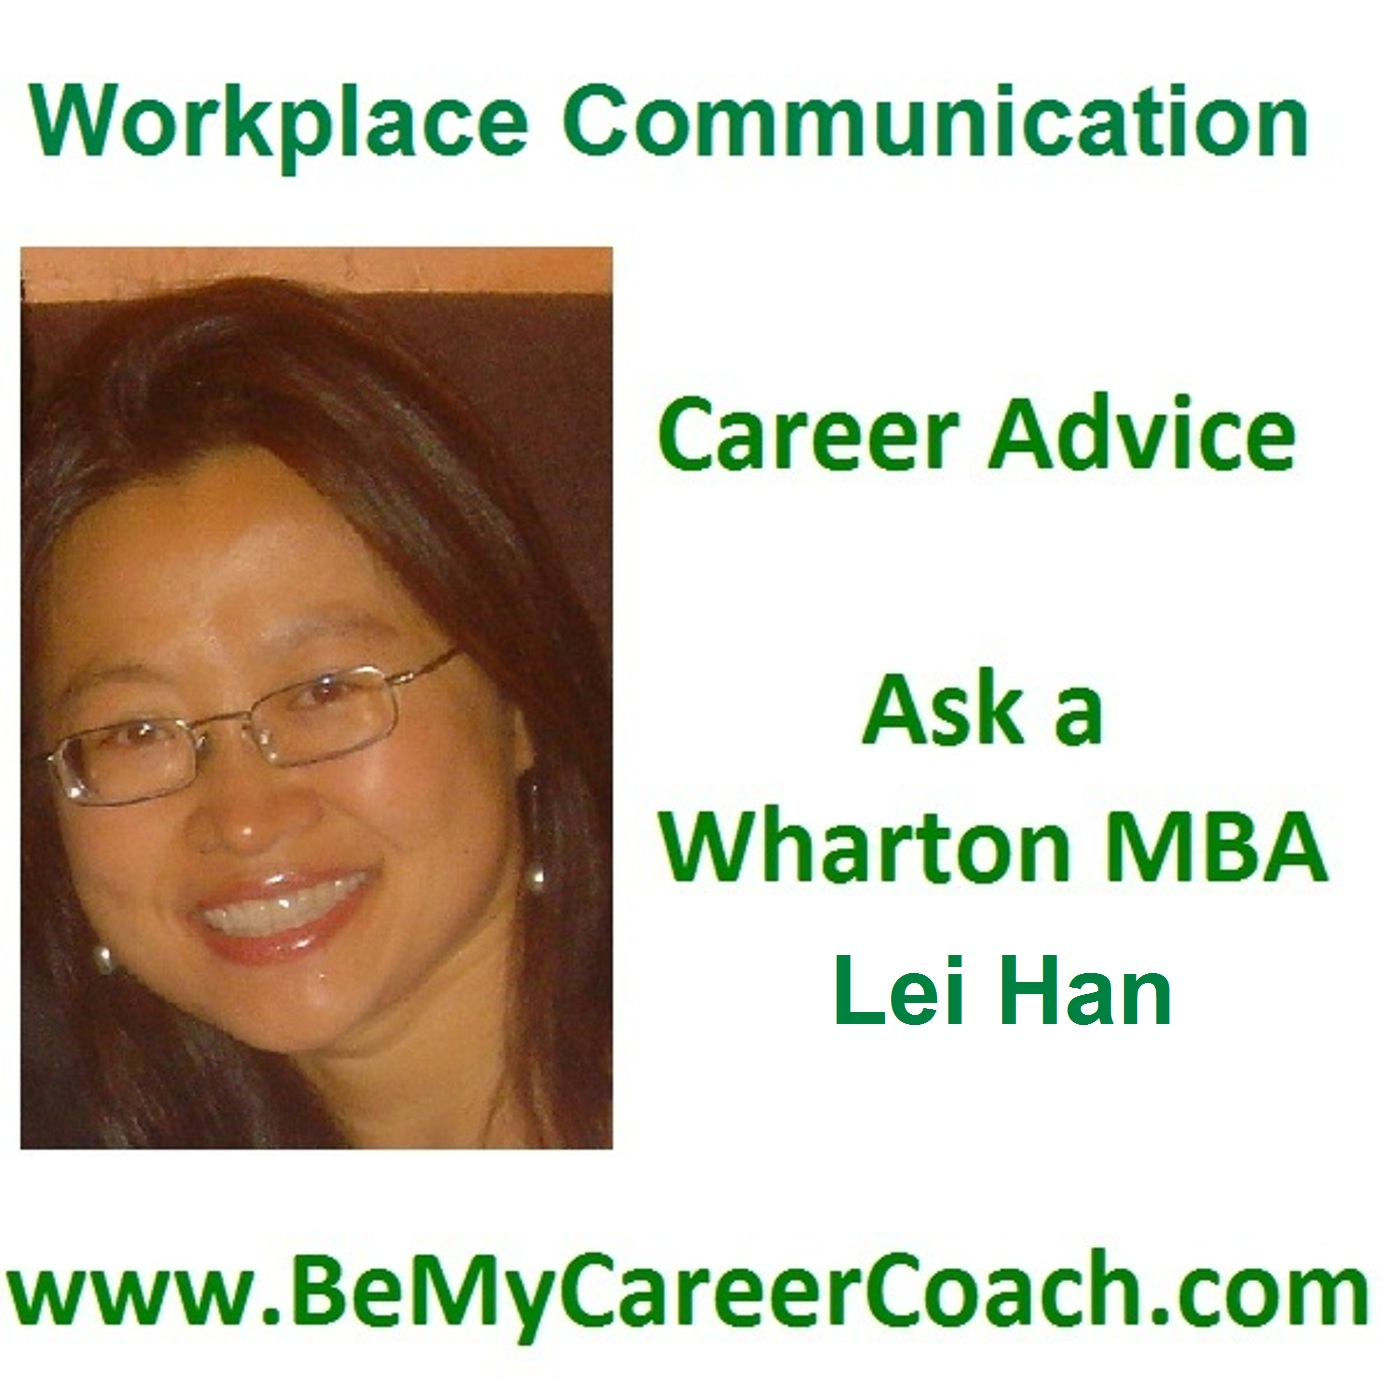 Workplace Communication - Soft Skills - Ask a Wharton MBA